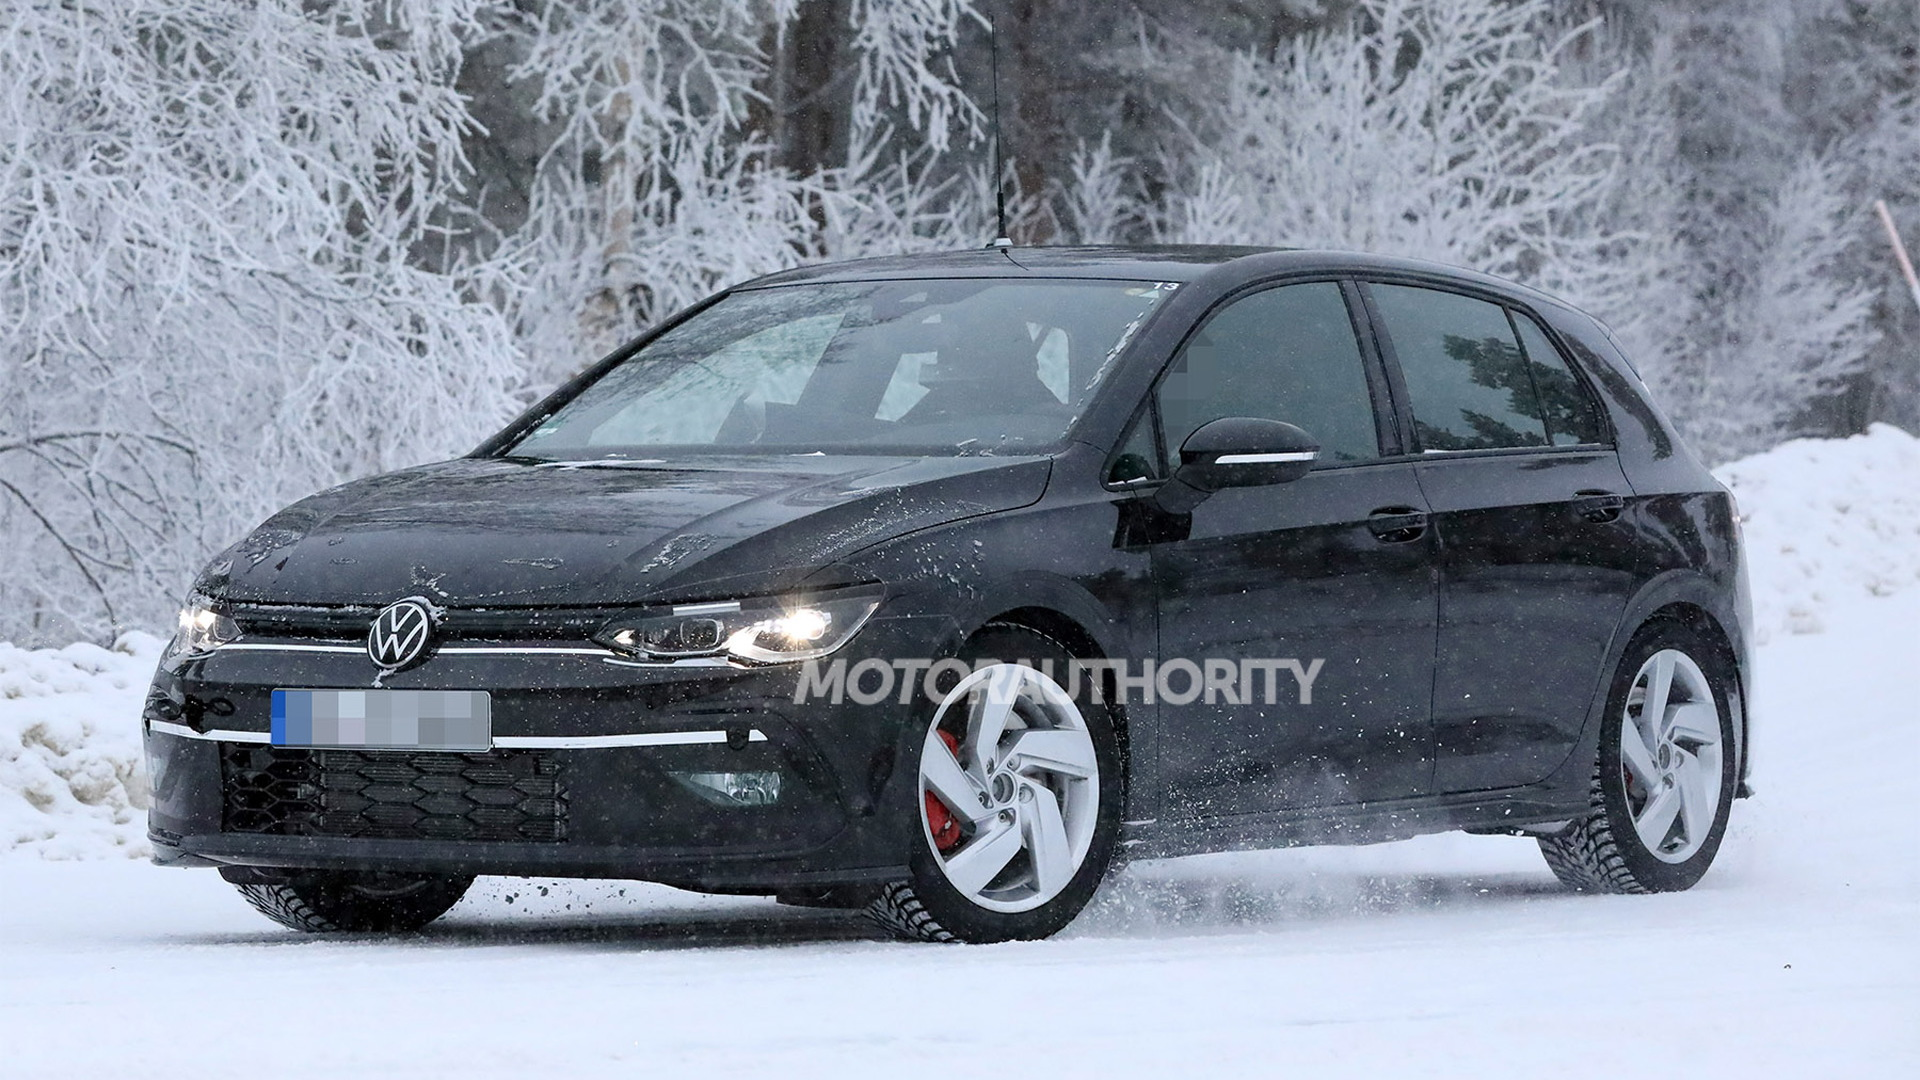 2021 Volkswagen Golf GTI spy shots - Photo credit: S. Baldauf/SB-Medien